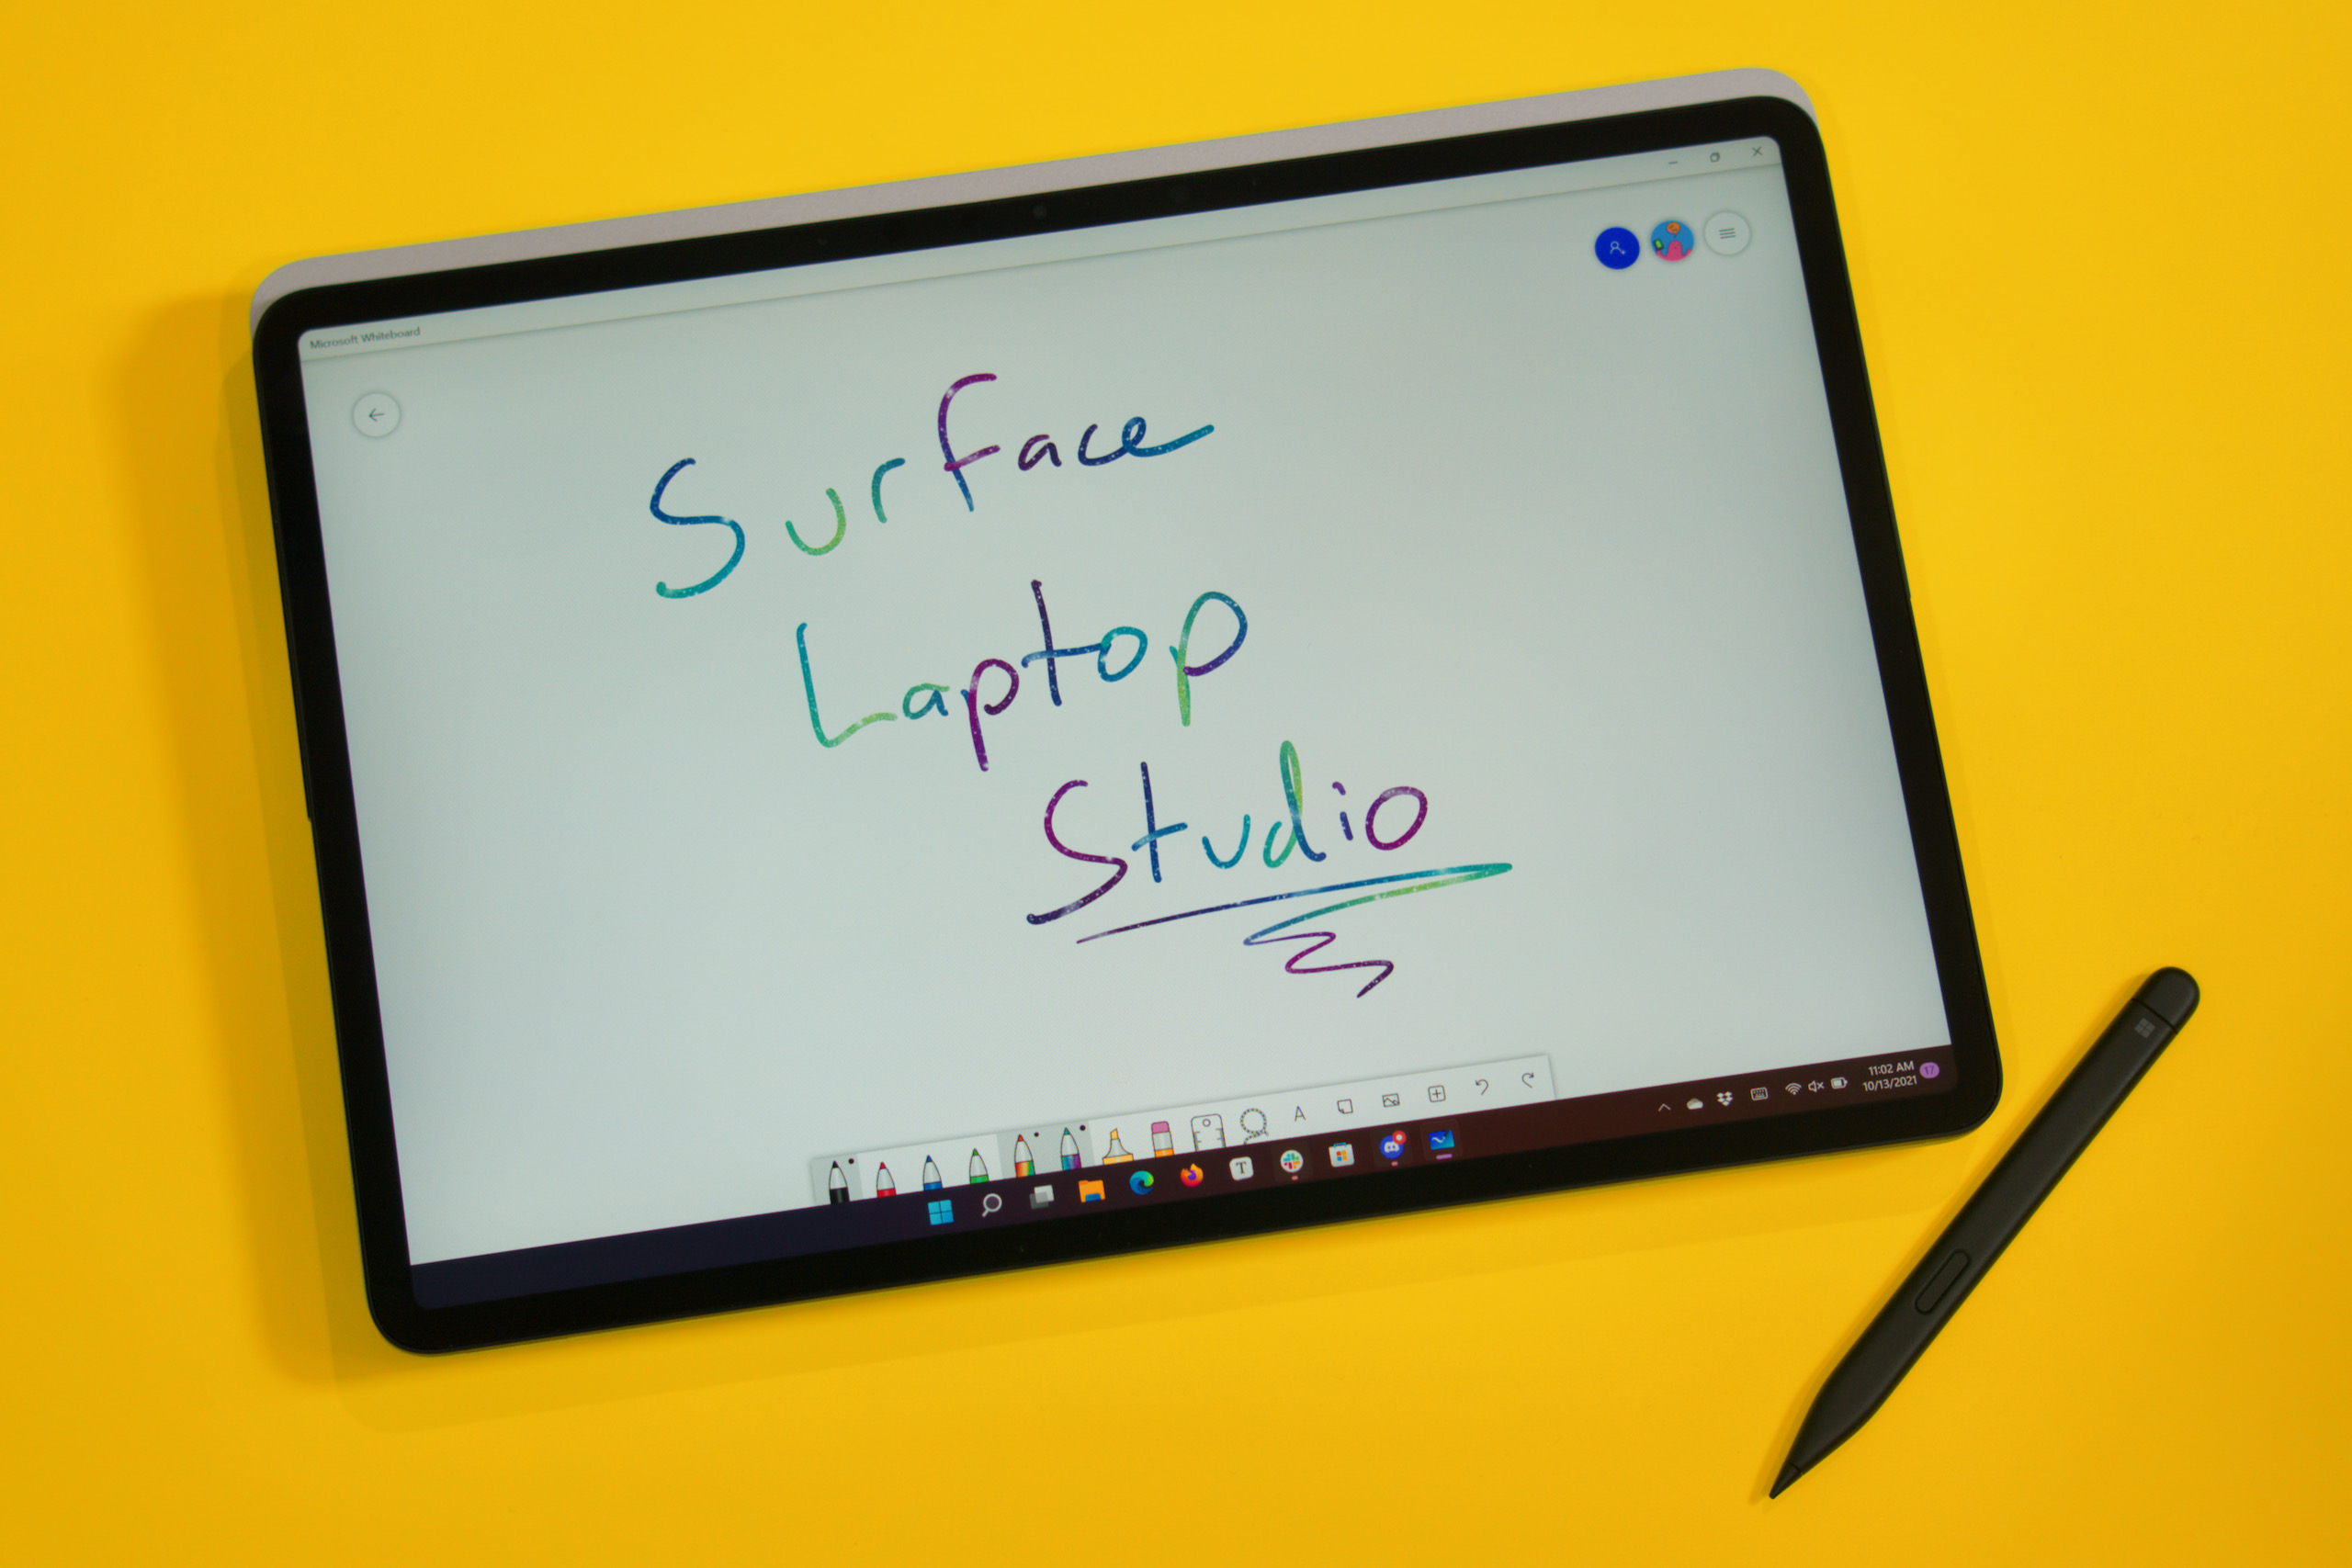 The Surface Laptop Studio makes a thick and heavy tablet, unlike the Surface Book where the tablet could be detached entirely from the base.